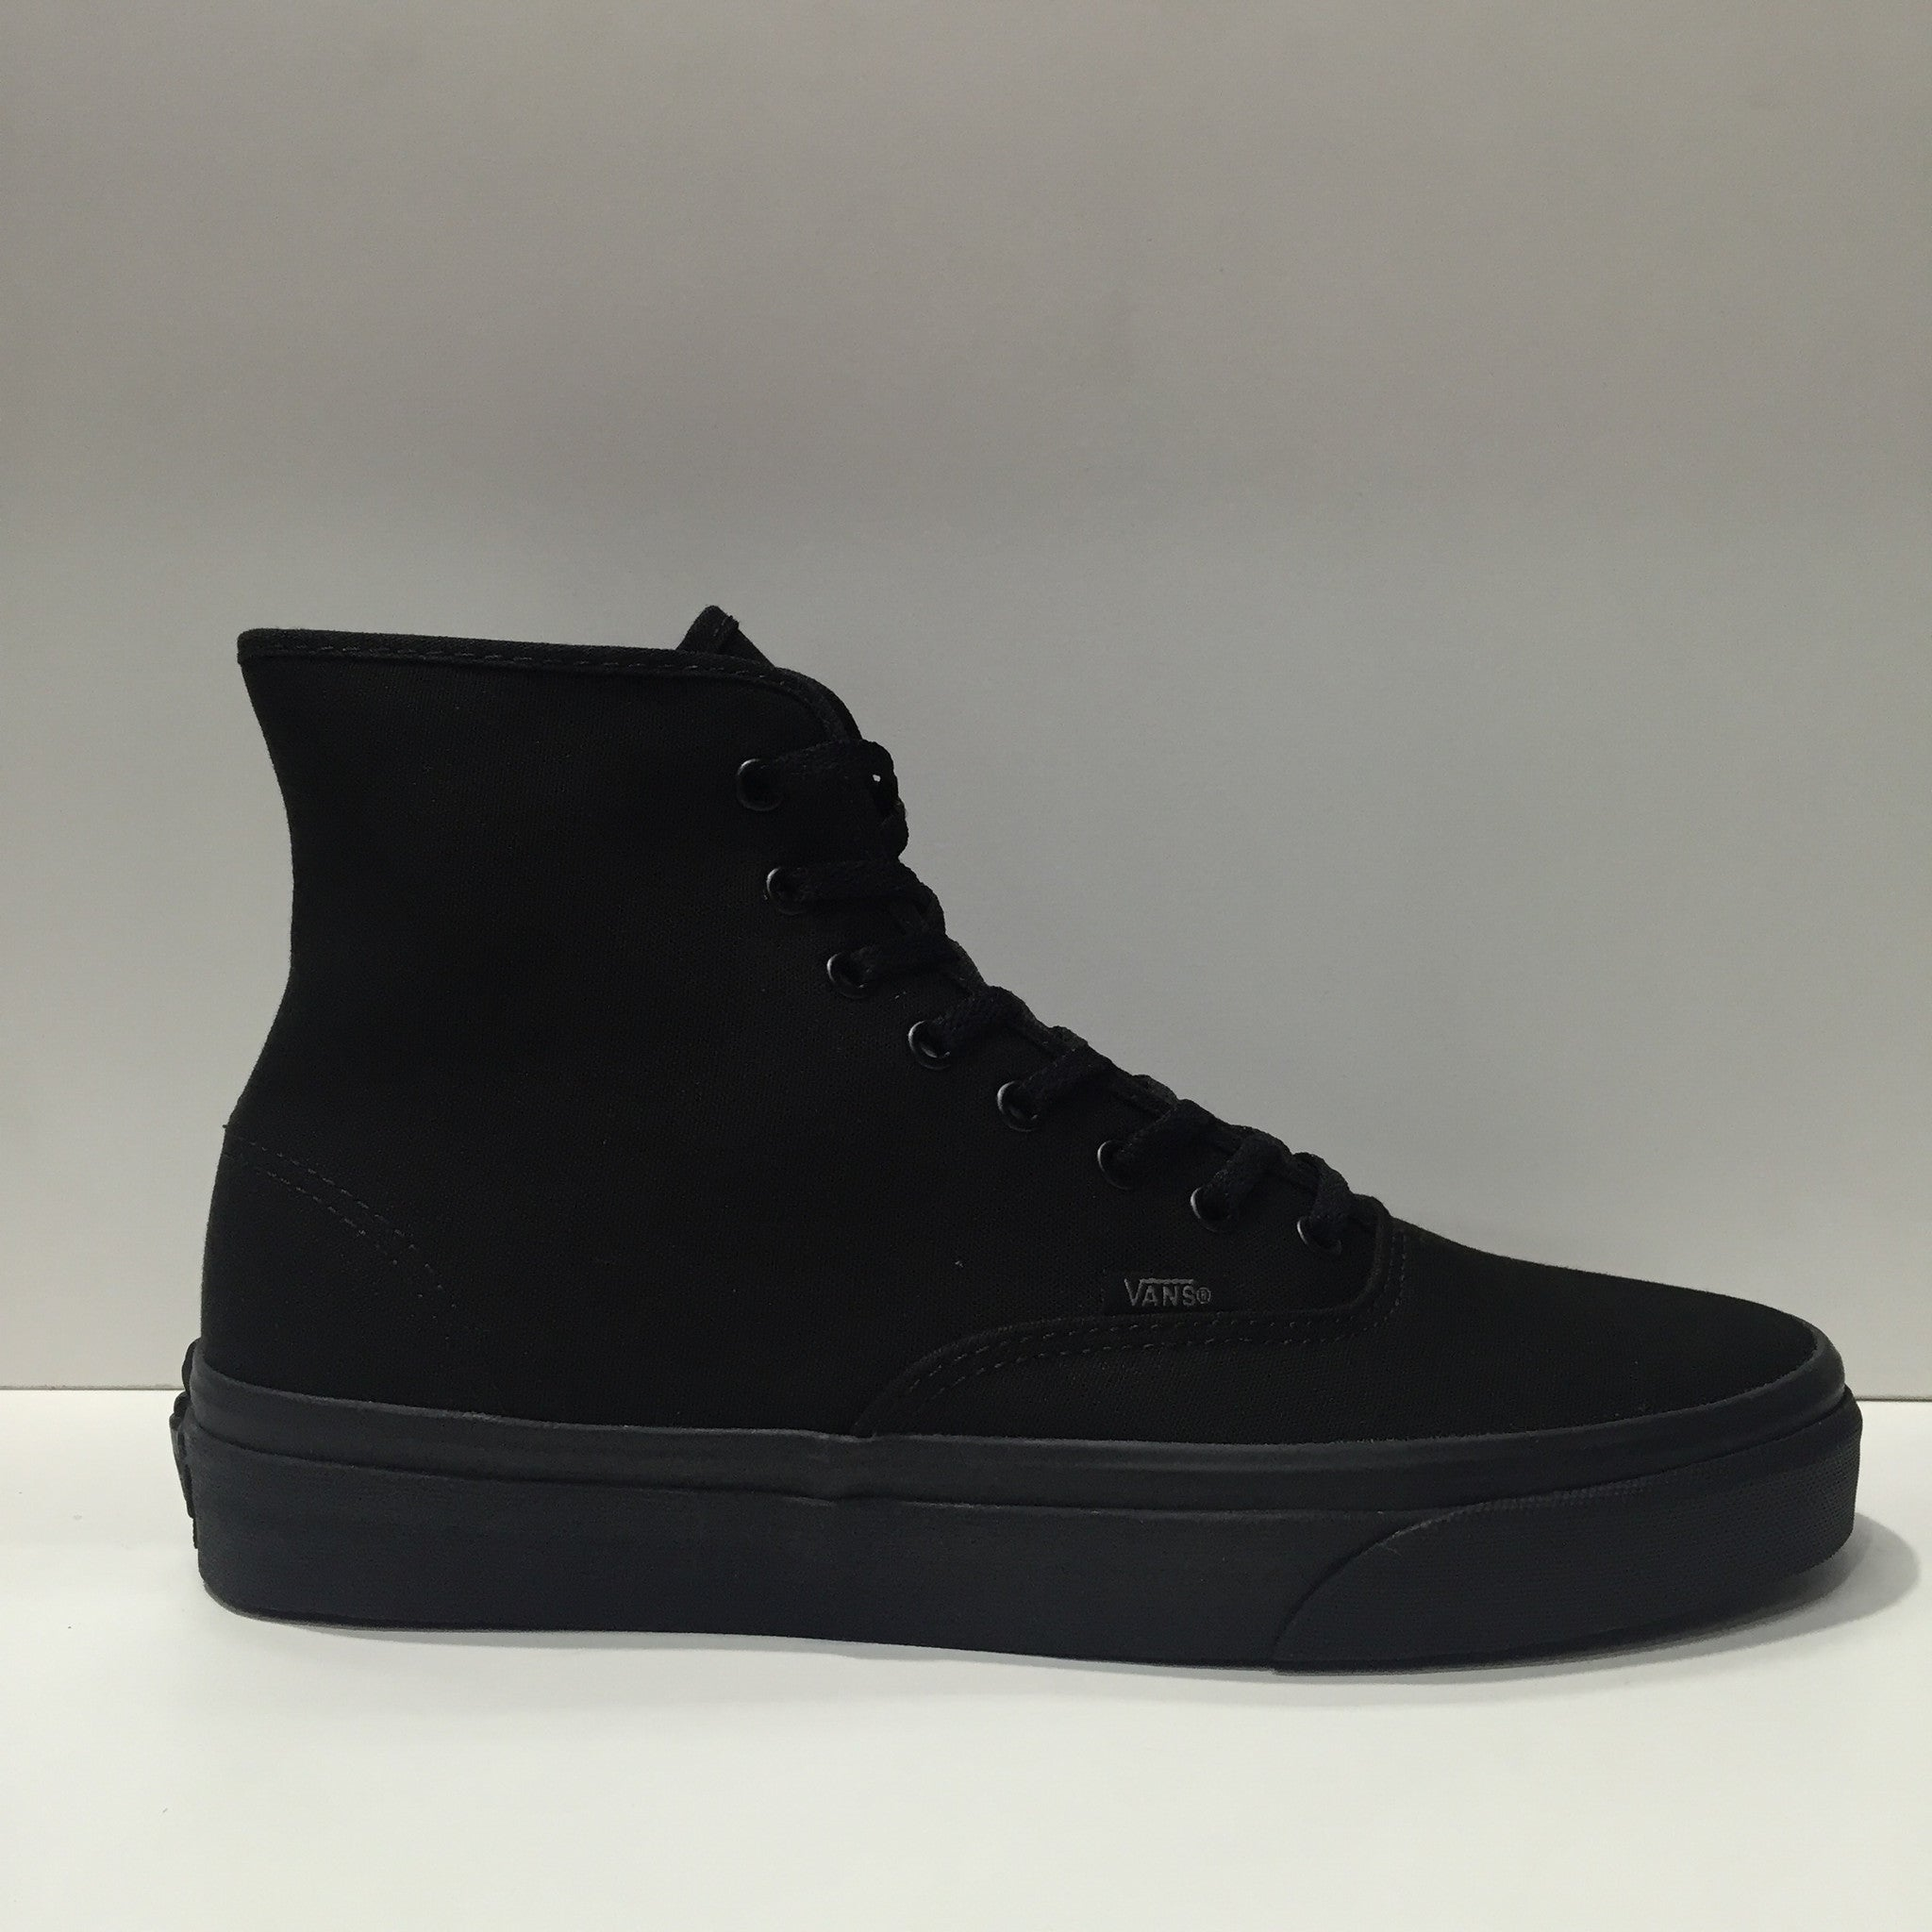 45e3e65cb510 Vans Authentic Hi Black Black Canvas Famous Rock Shop Newcastle 2300 NSW  Australia ...